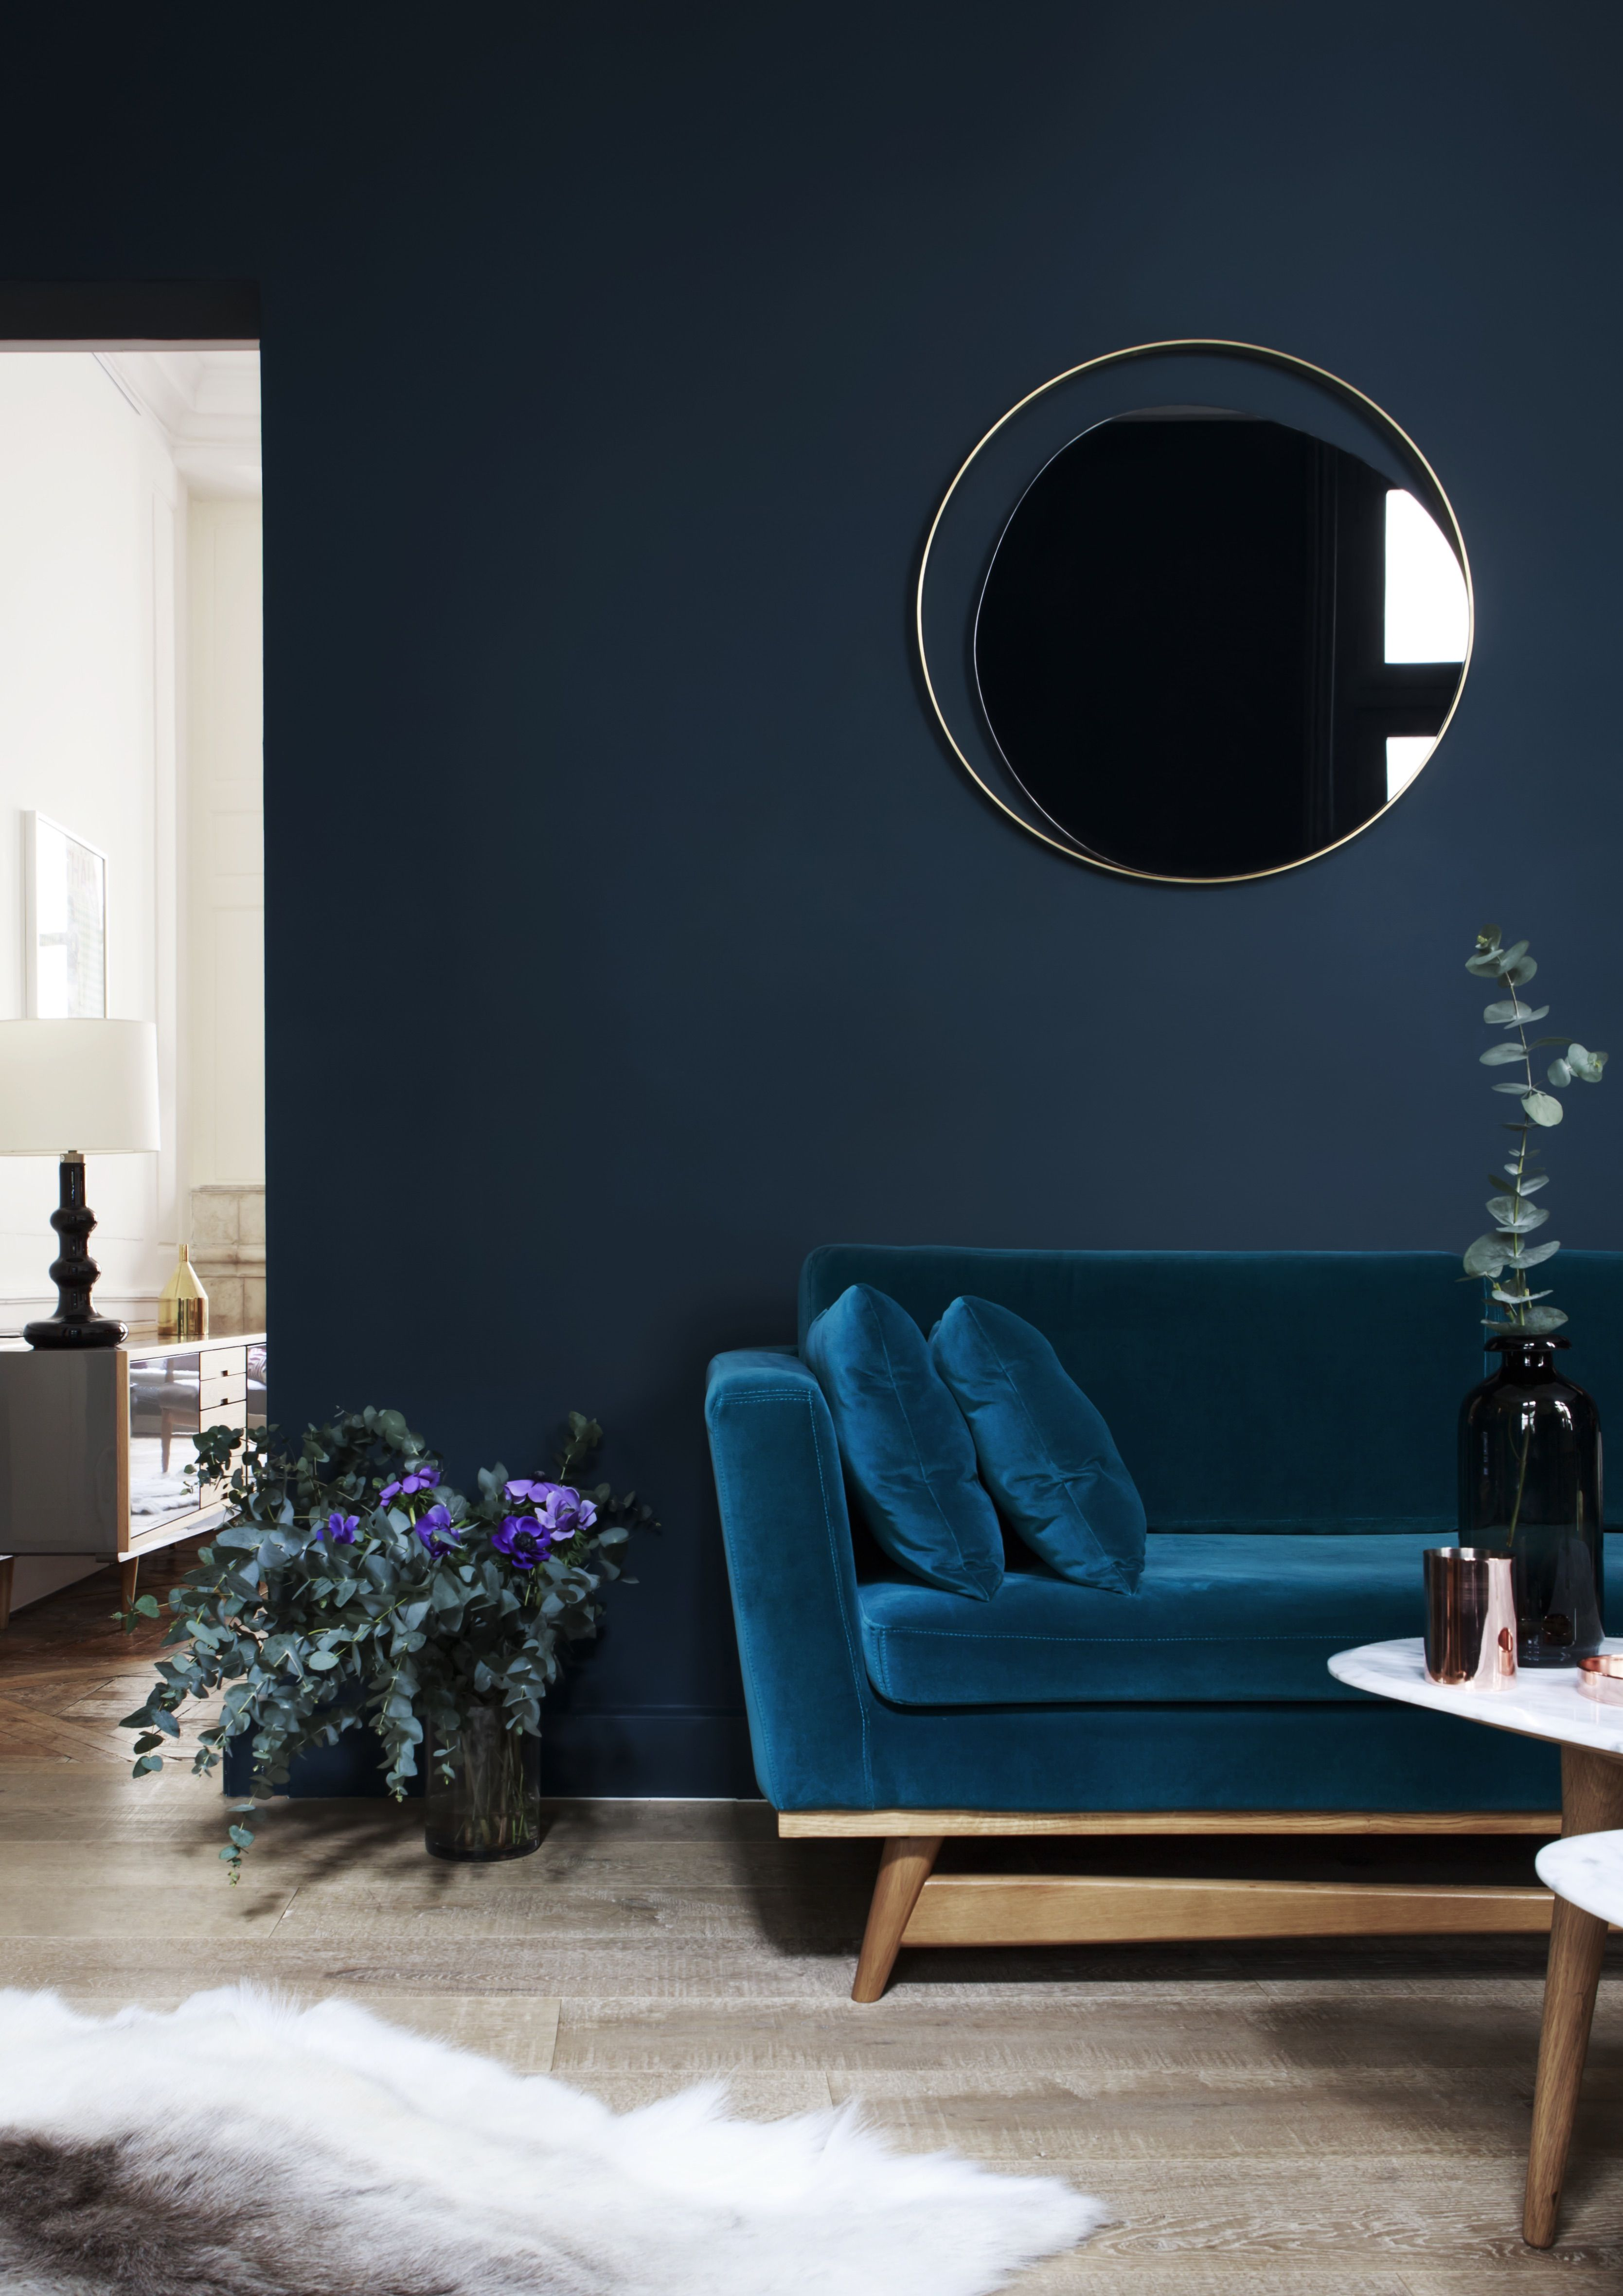 Canap 210 velours bleu canard red edition miroir en verre for Blue living room walls